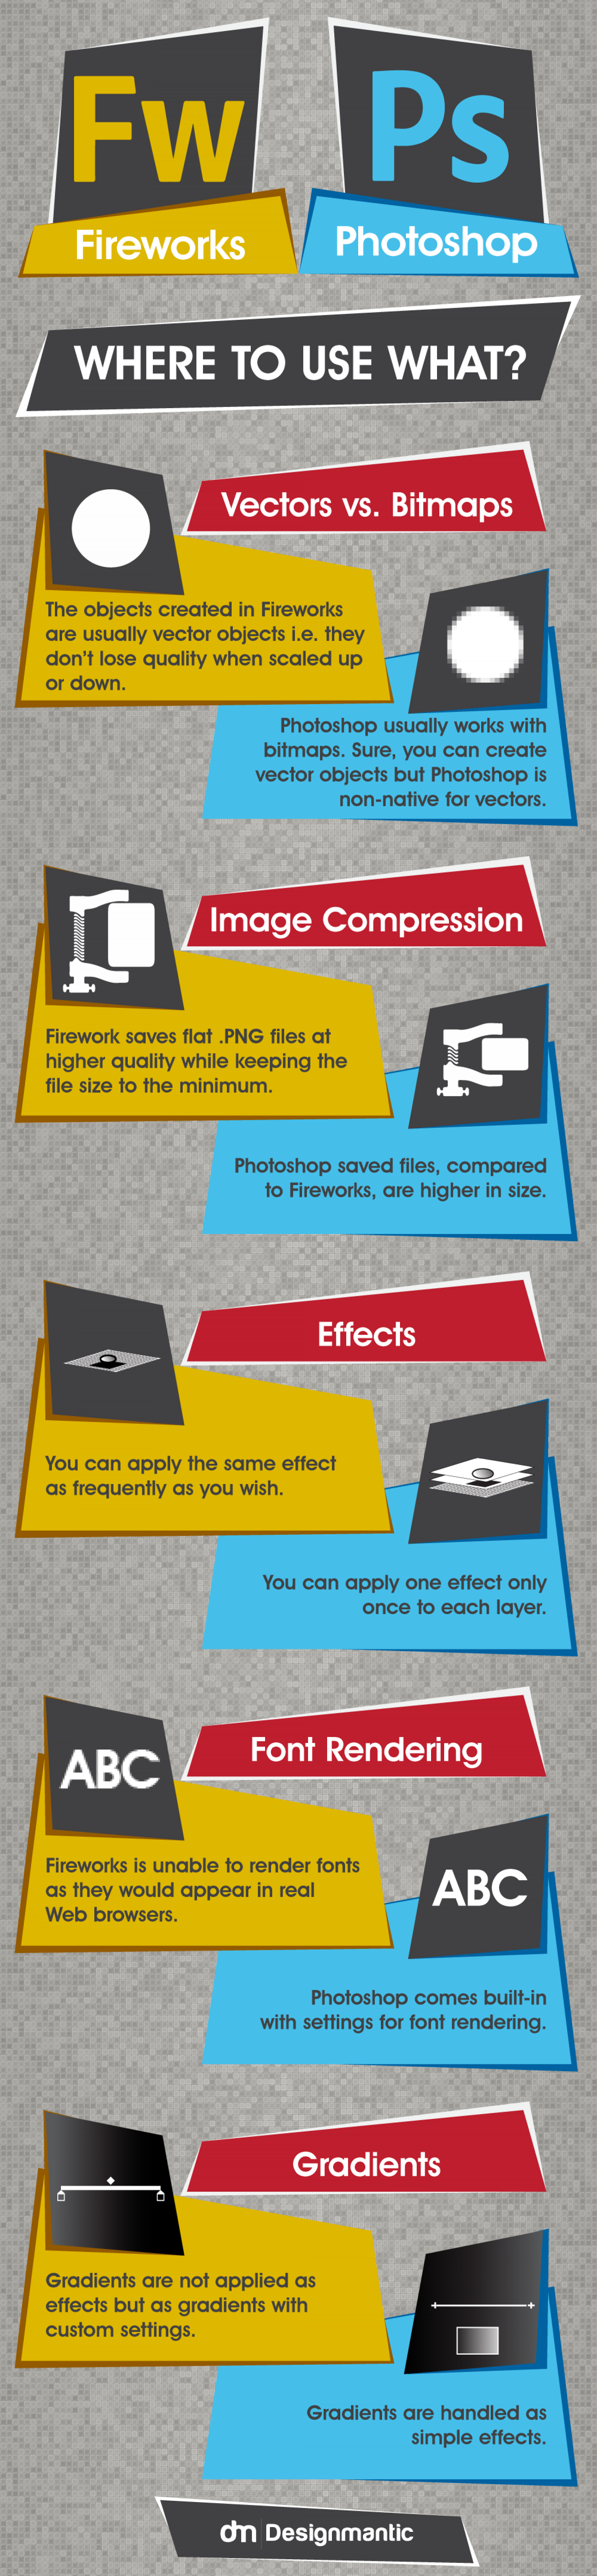 Fireworks vs. Photoshop Infographic